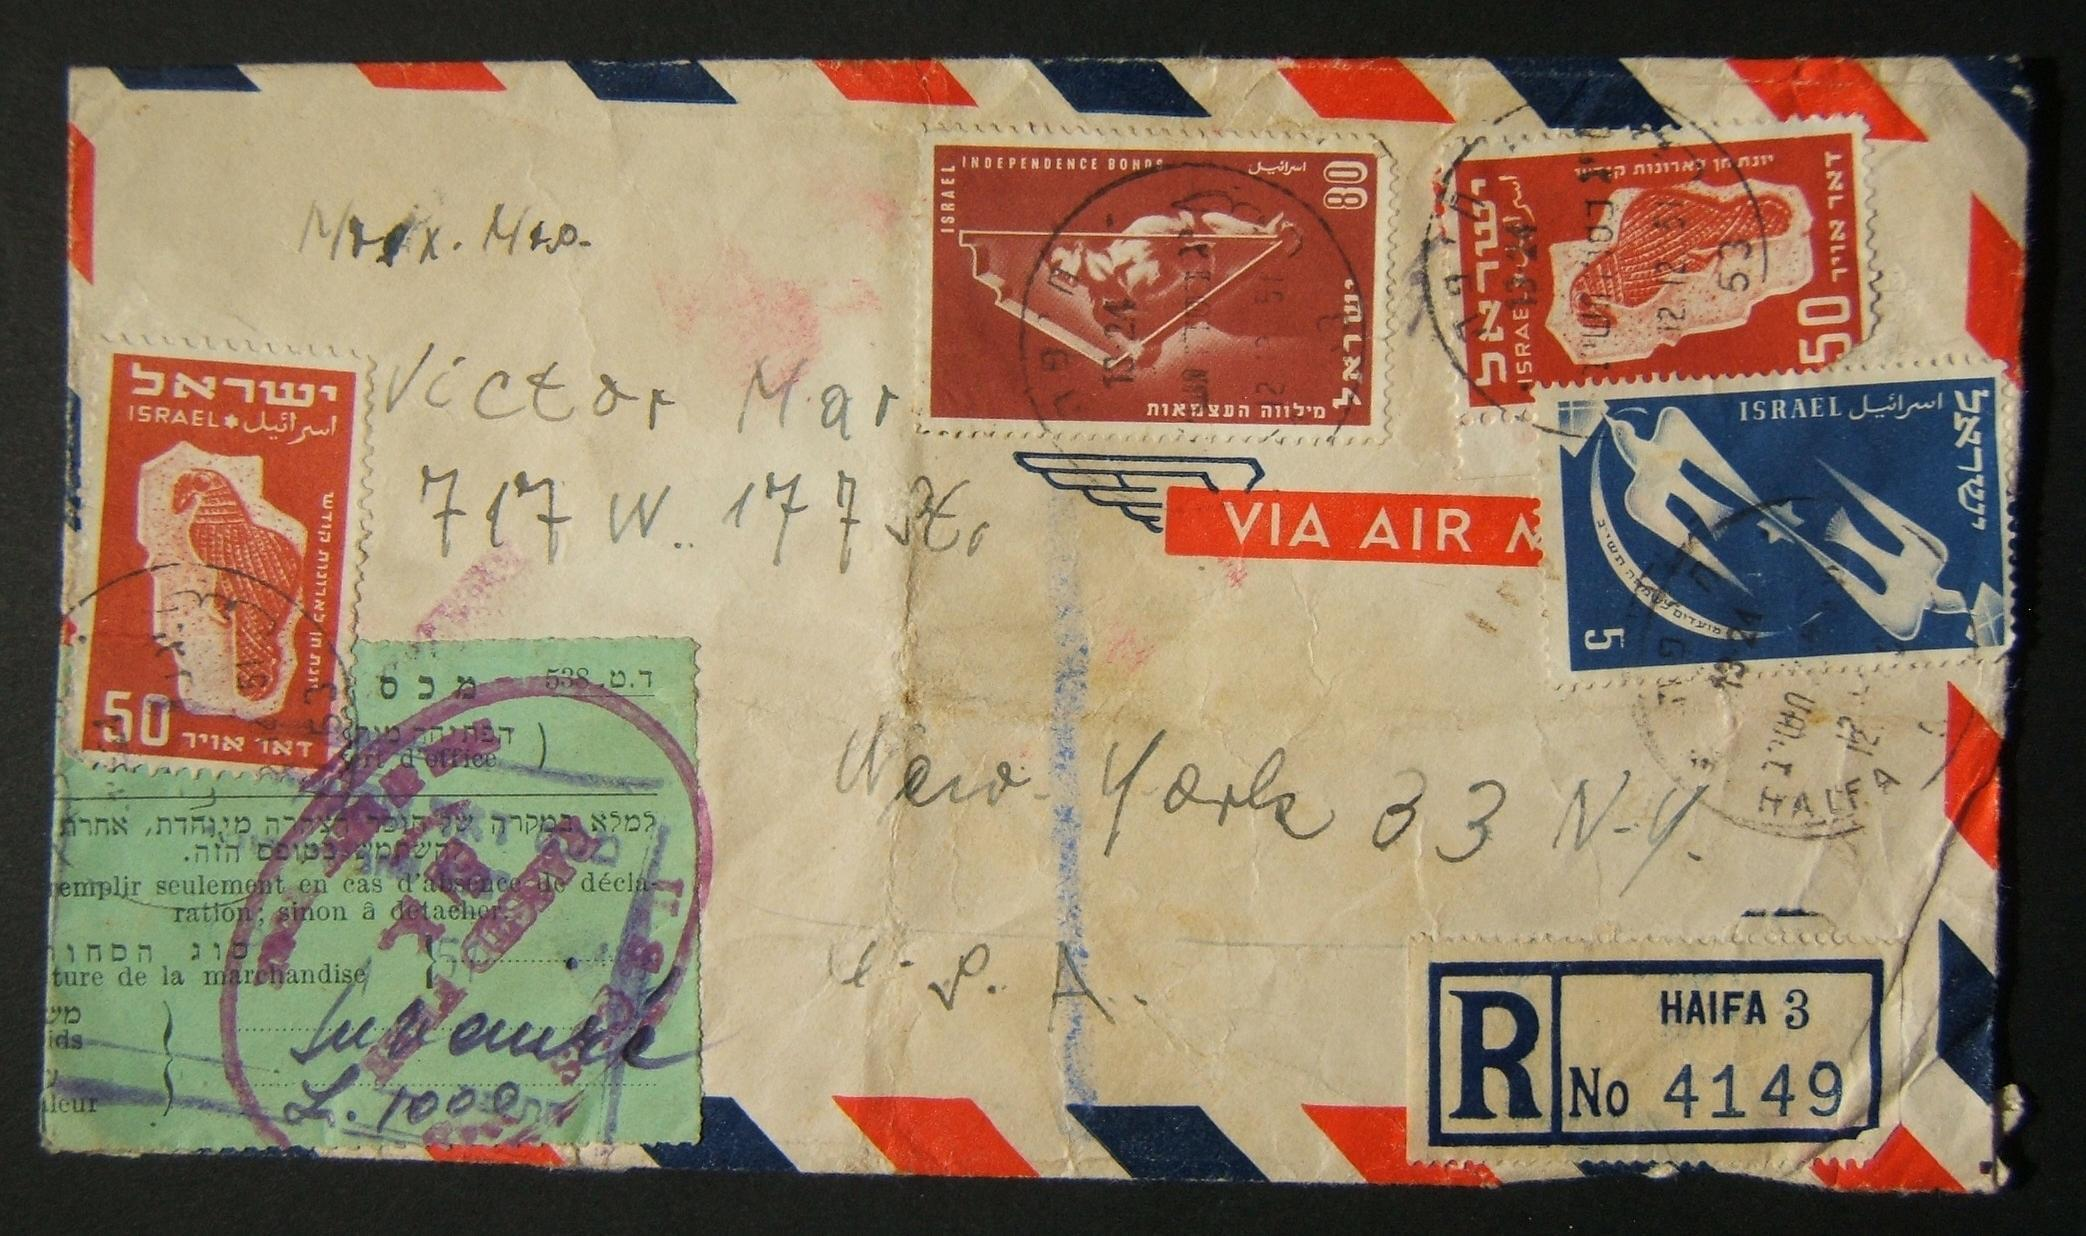 1950 1st airmail / PO's, rates & routes: 12-12-1951 registered airmail cover ex HAIFA to NYC with customs declaration form 538 attached to lower left, franked 185pr at the FA-2a pe